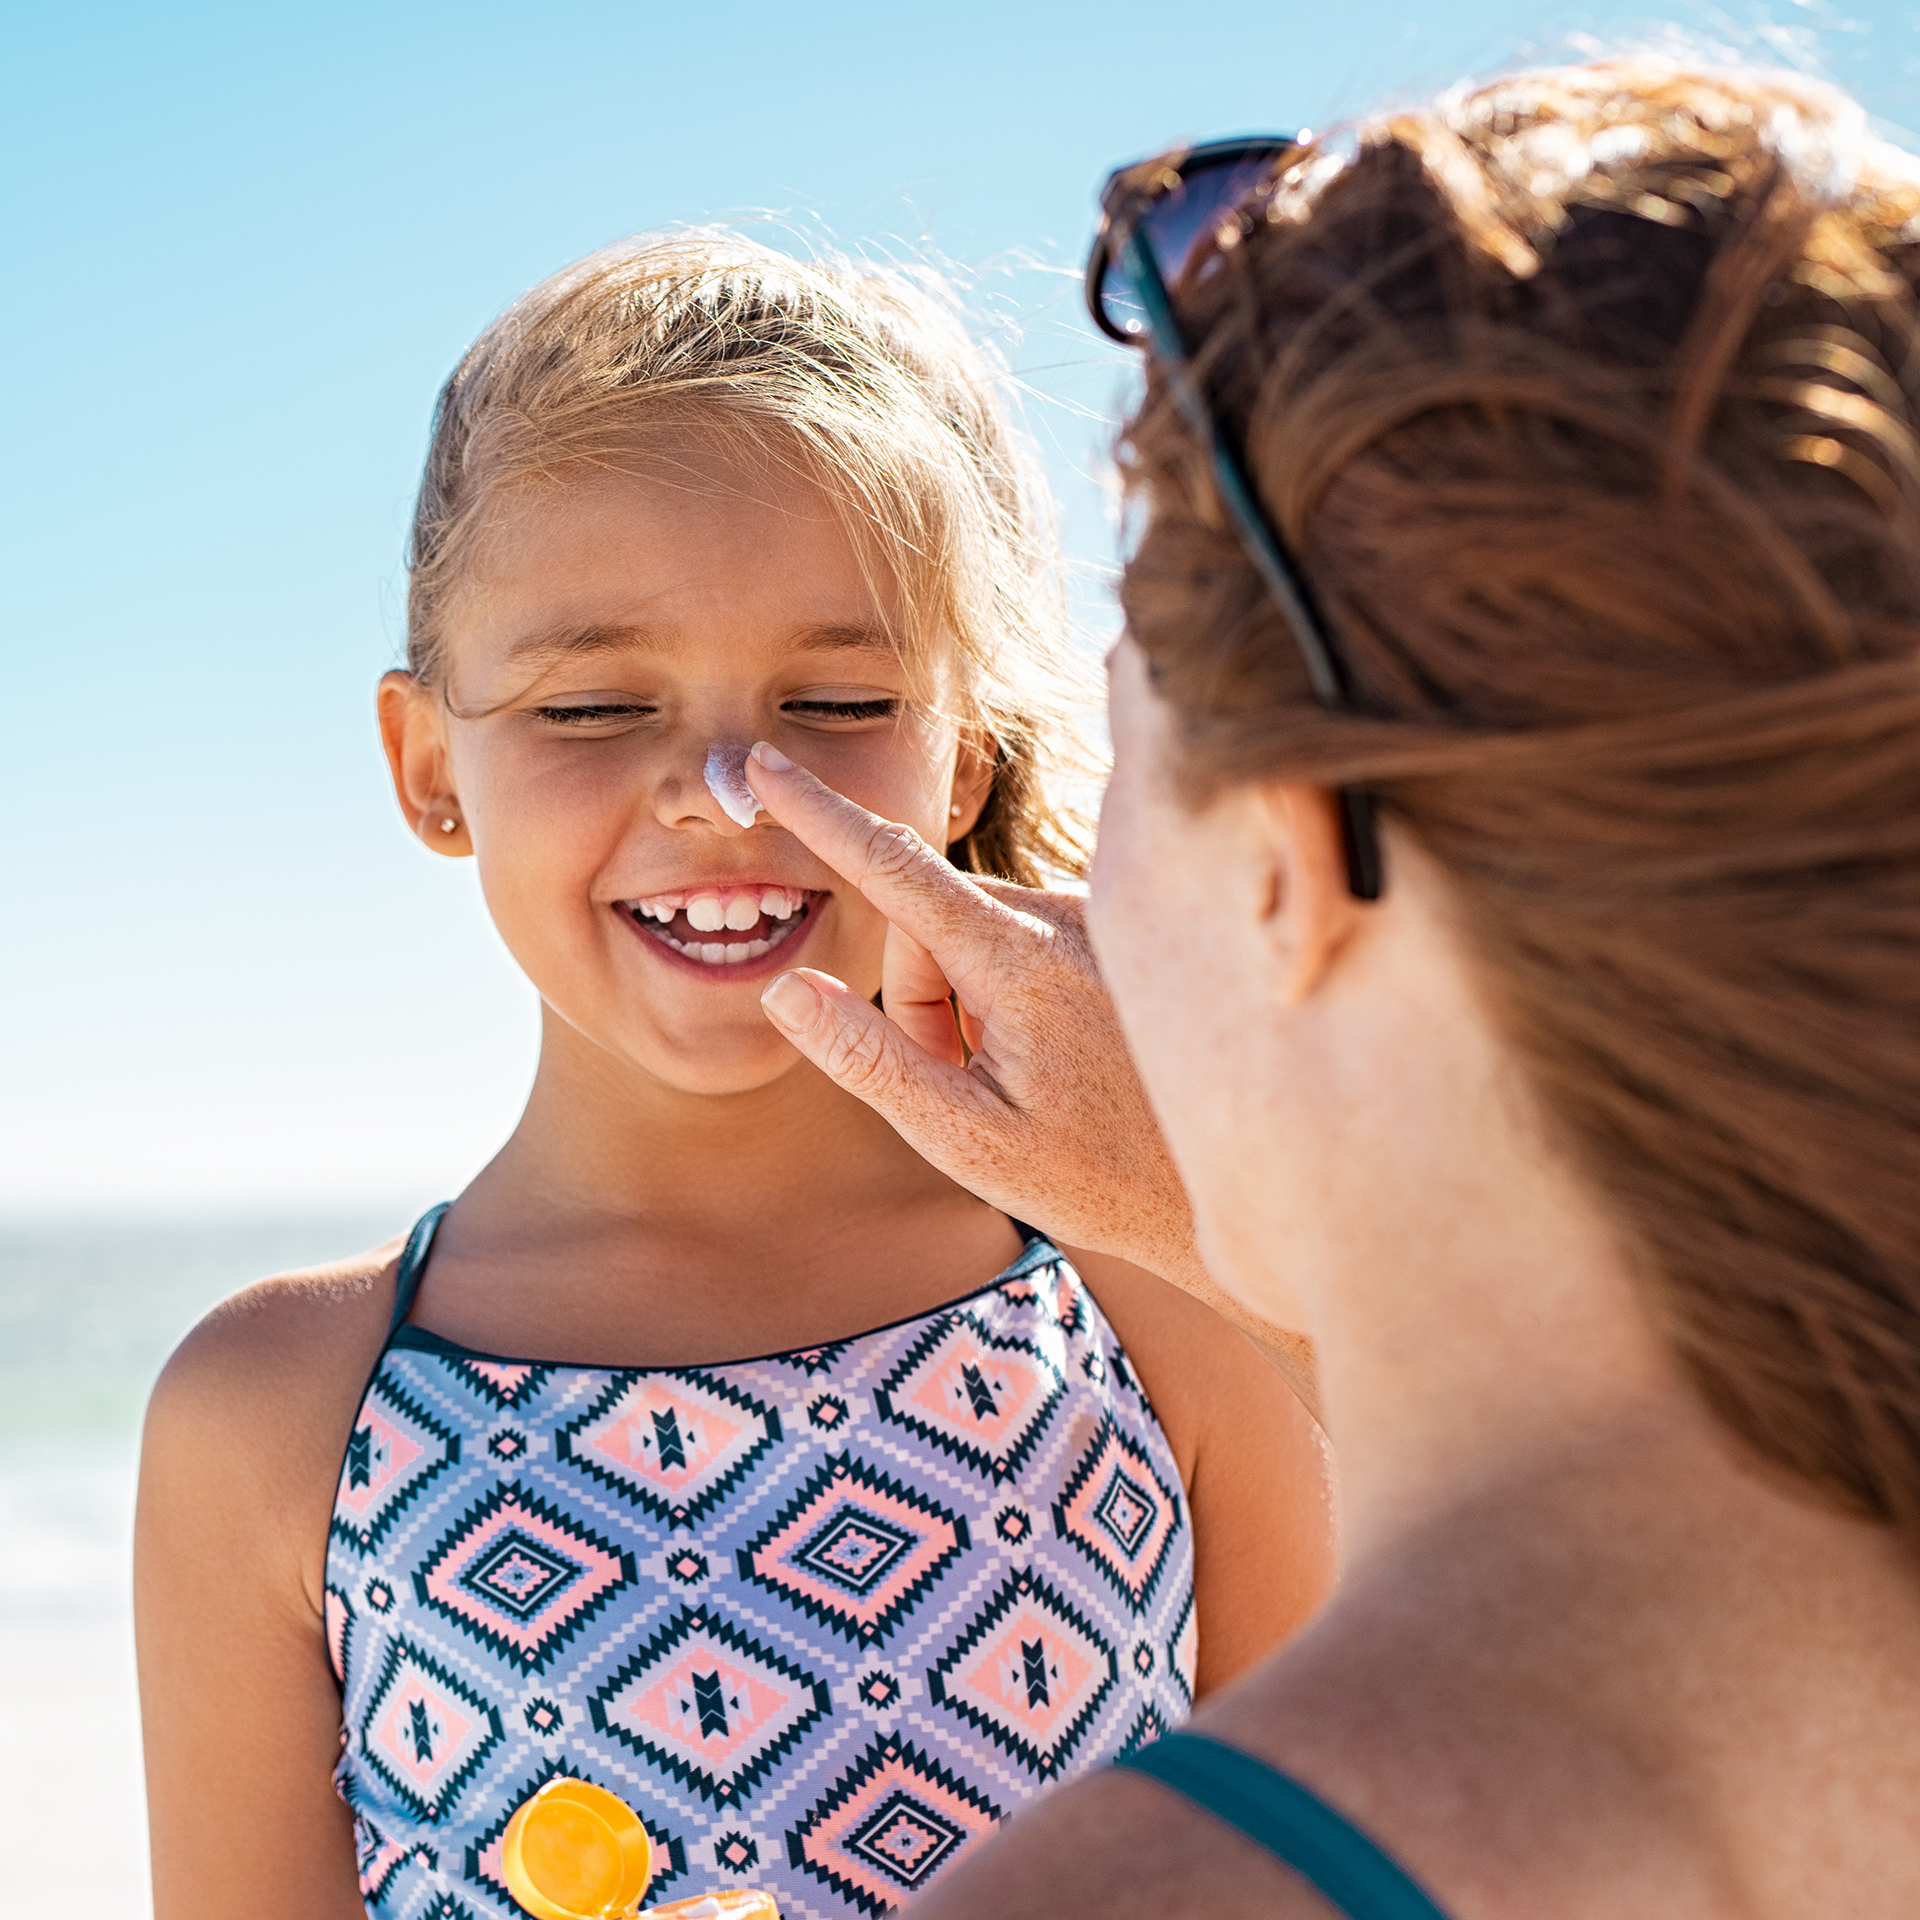 Sunscreen and the environment